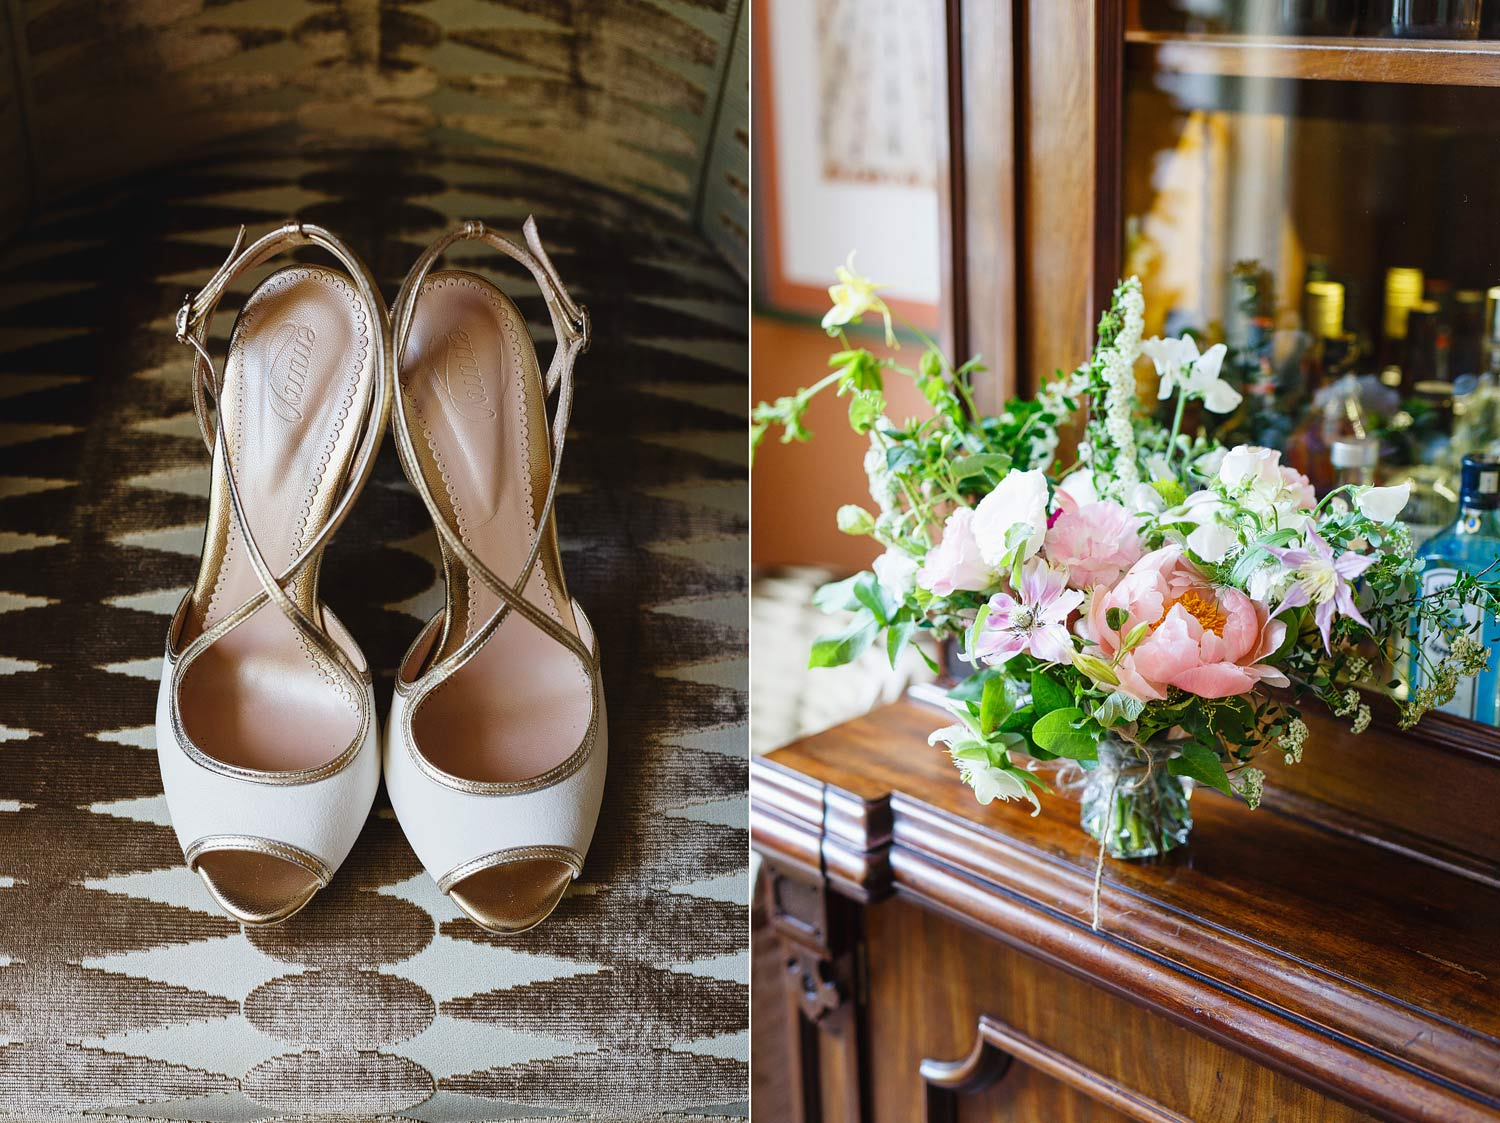 Emmy Shoes and a bouquet at Dorset Square Hotel - London wedding photographer